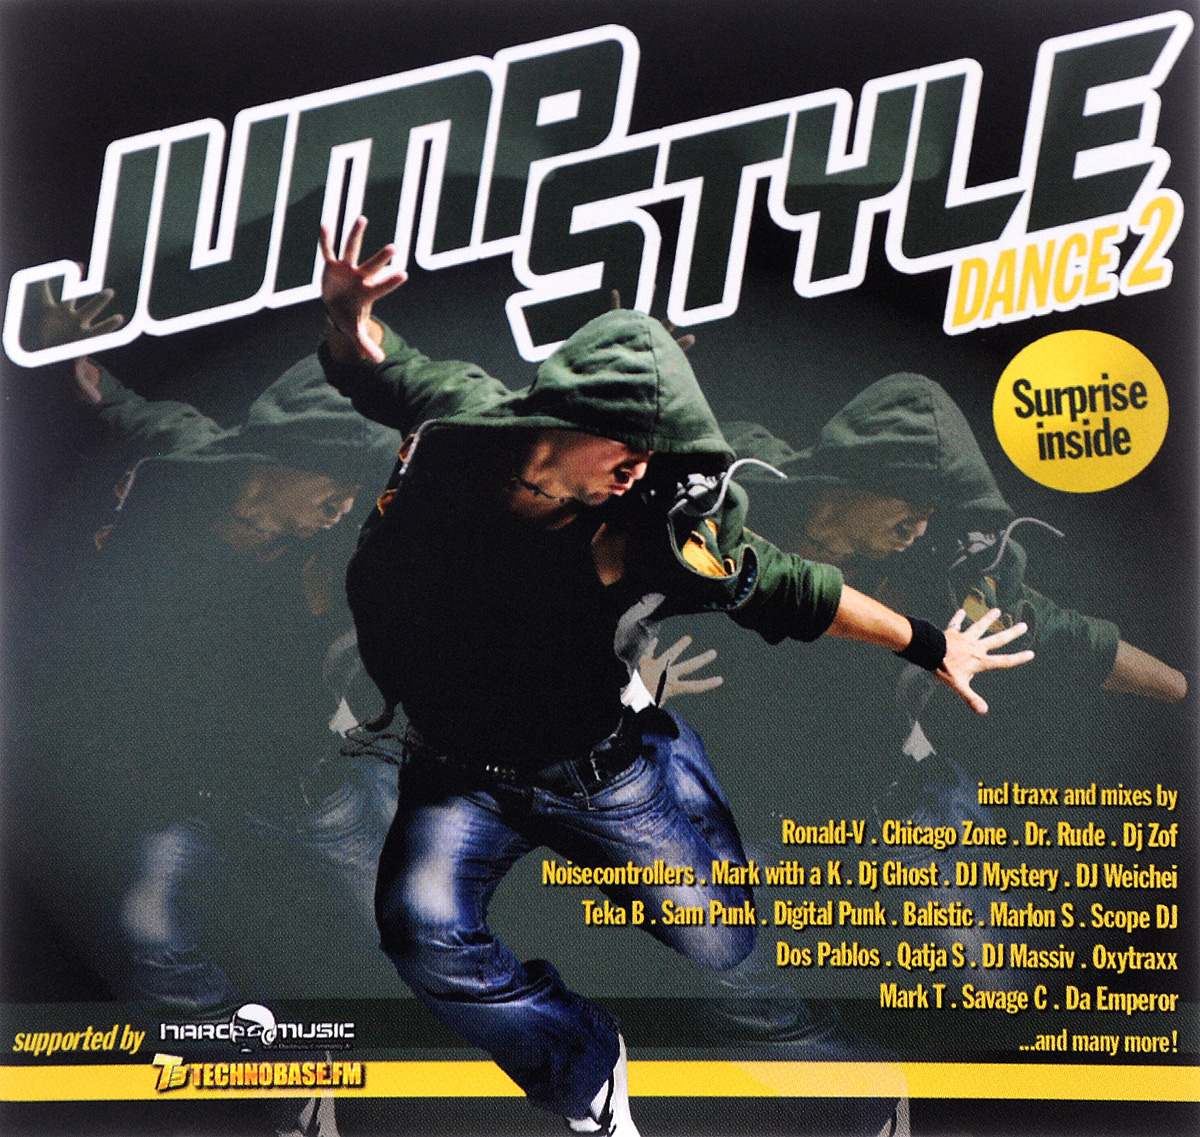 Da Emperor,Dany BPM,Demoniak,Digital Punk,DJ Ghost,Marlon,Noisecontrollers,DJ Massiv,The Carnaby,Jumperz Spirit,DJ Mystery,Comiccon,DJ Jones,DJ Yoeri,Mr Eyez,Savage,DJ Fenix,Chicago Zone,M-Bitious Jump Style. Dance 2 (2 CD) eshiny mini red green laser projector 20 patterns christmas party dj lighting lights disco party bar dance stage light show y21